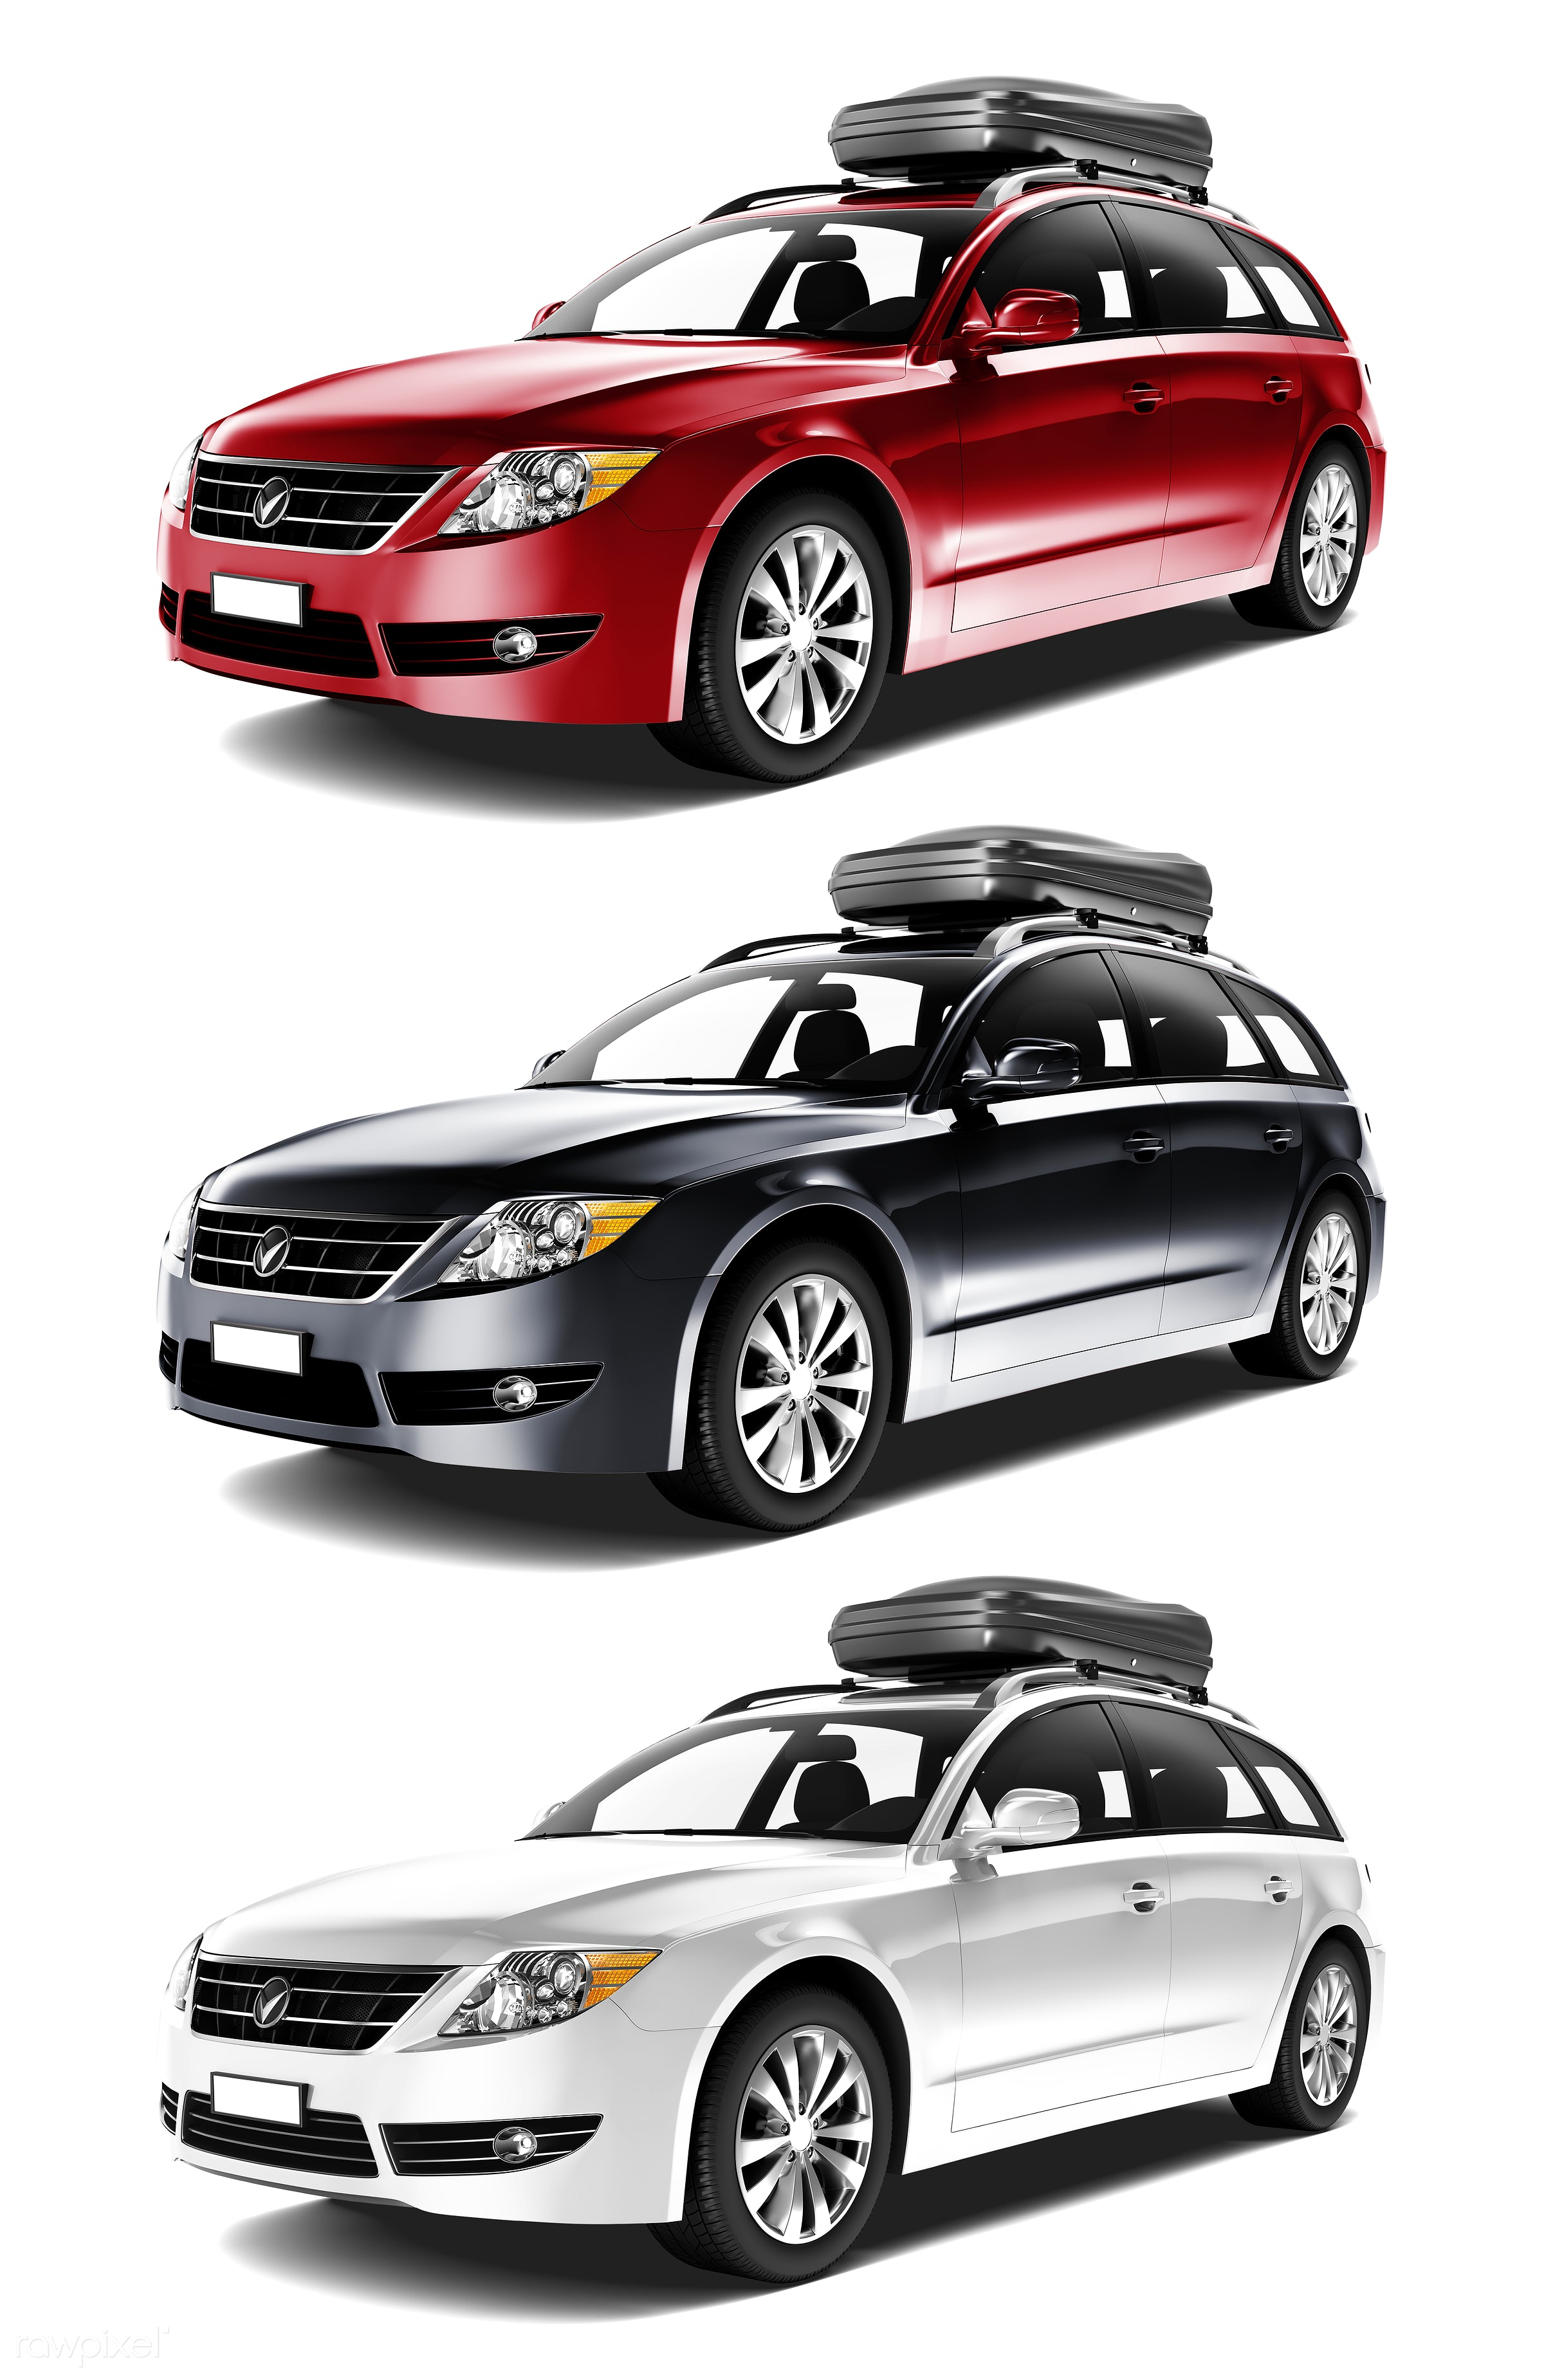 Three dimensional image of car - 3d, automobile, automotive, brandless, car, collection, concept car, graphic, holiday,...